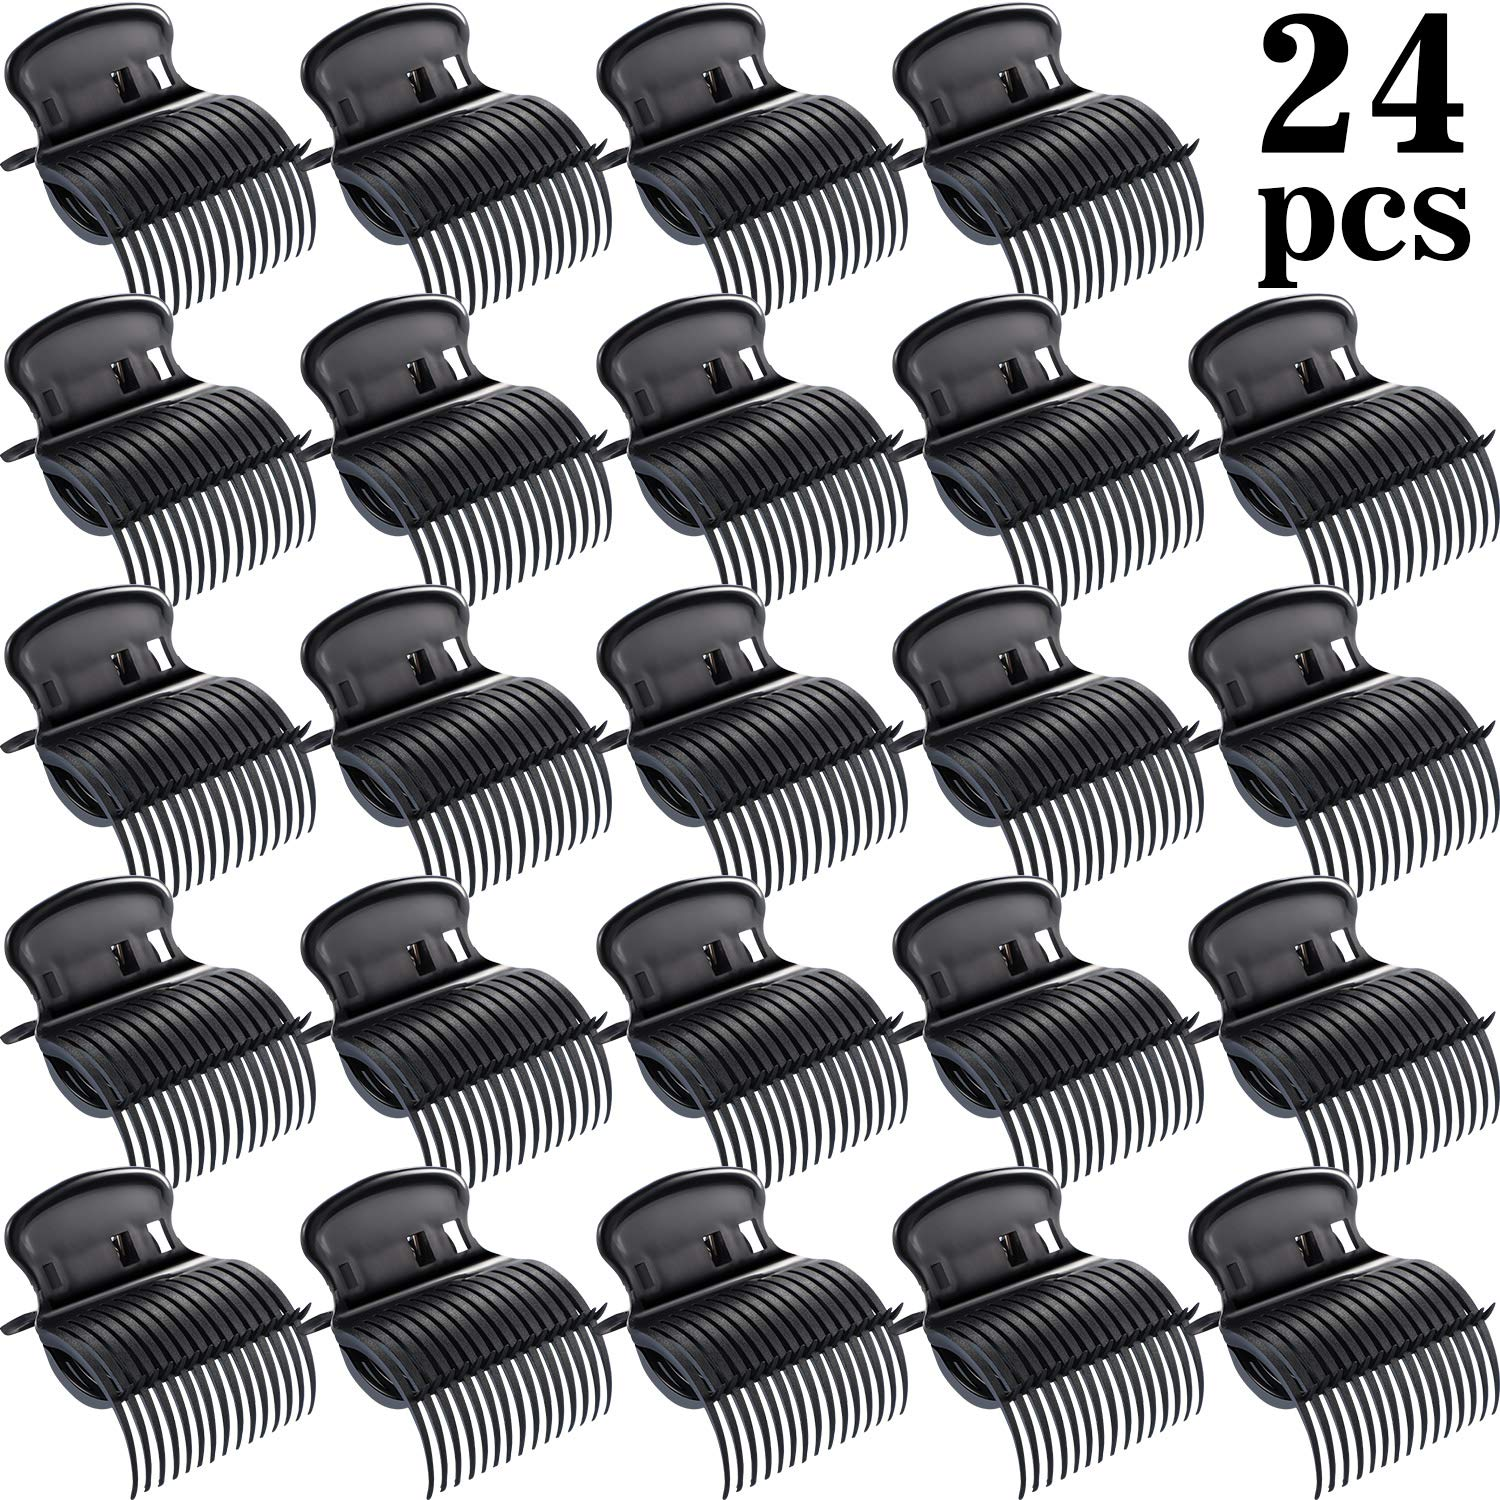 24 Pieces Hot Roller Clips Hair Curler Claw Clips Replacement Roller Clips for Women Girls Hair Section Styling (Black)